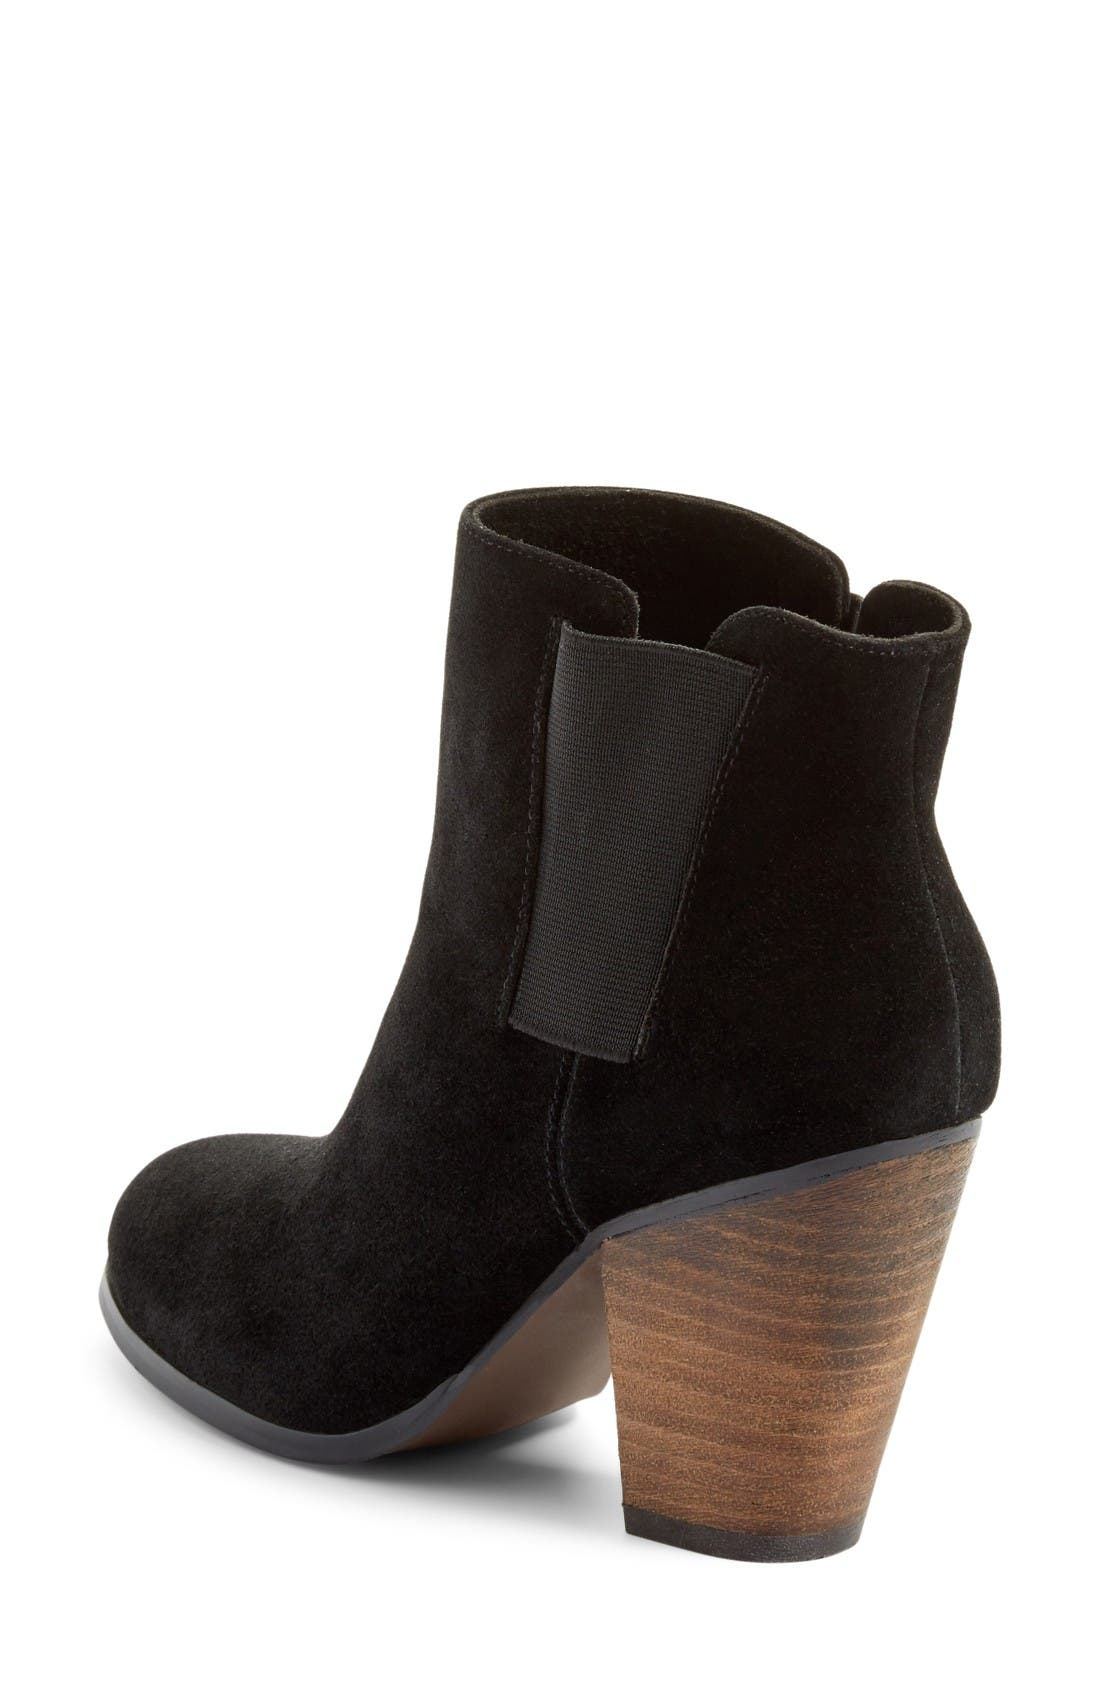 Alternate Image 2  - Sole Society 'Lylee' Suede Bootie (Women)